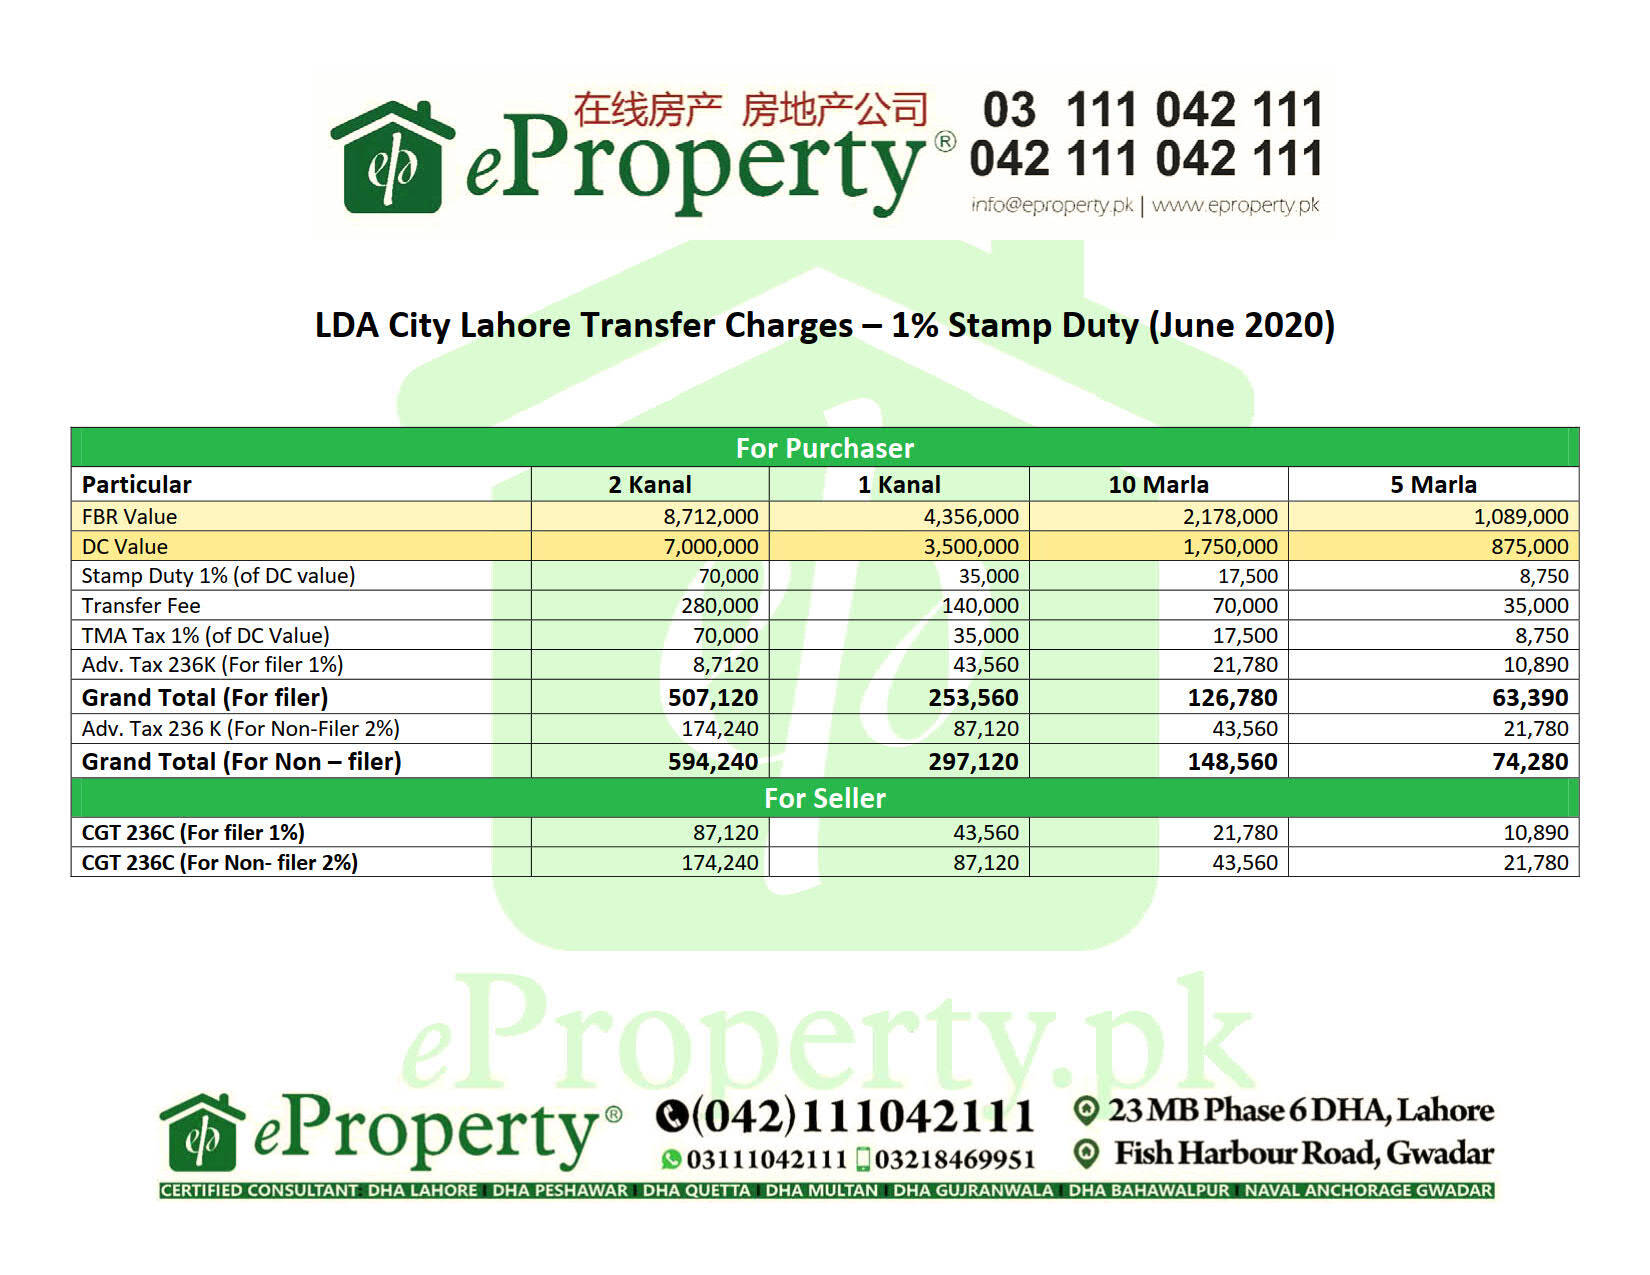 LDA City Lahore Transfer Schedule 1% Stamp Duty June 2020